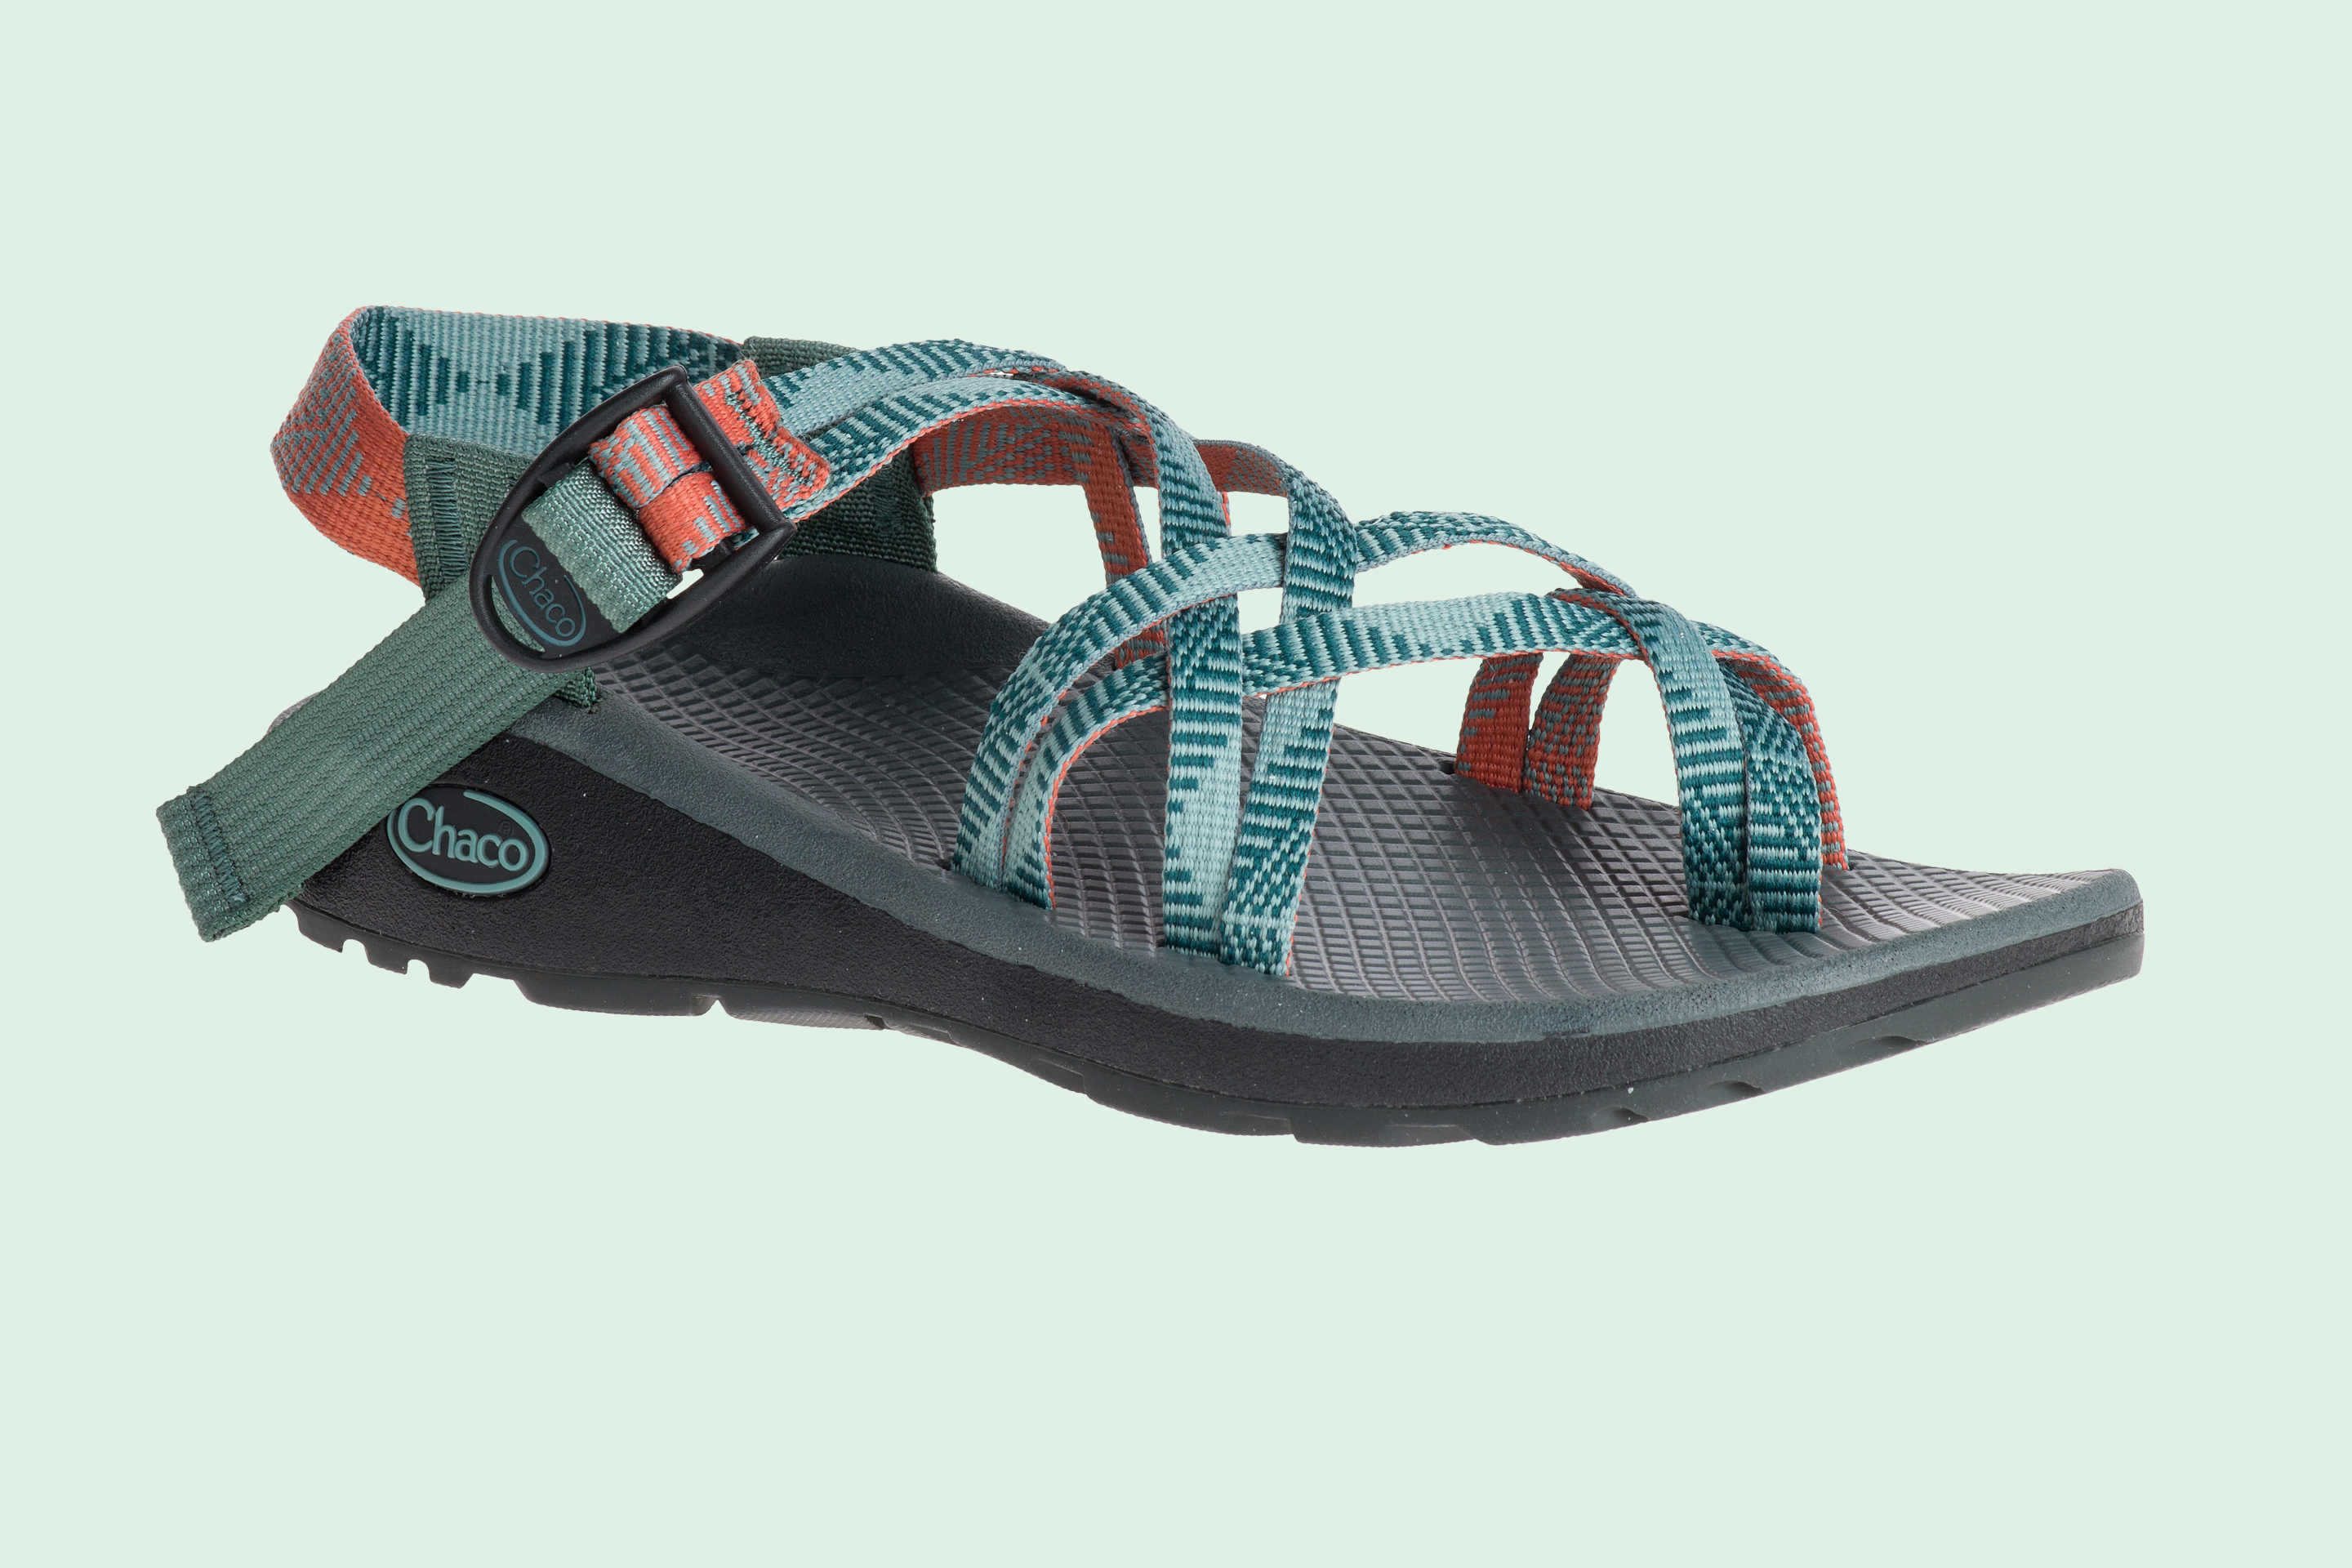 shoes like chacos but cheaper